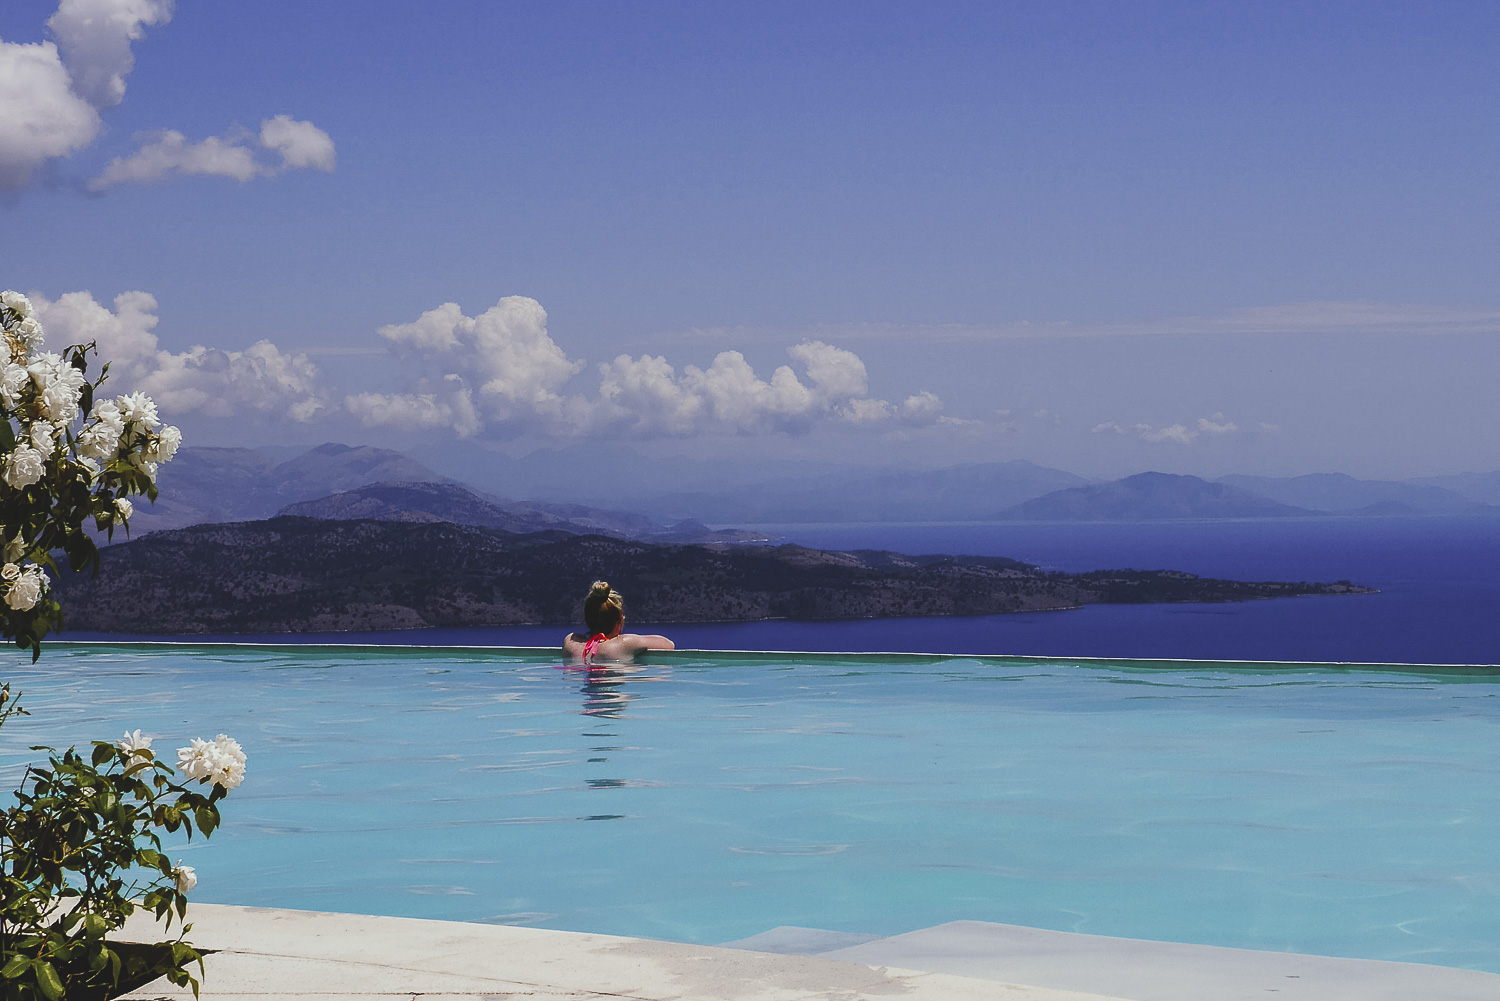 Looking out over an infinity pool - how to take a break from your business